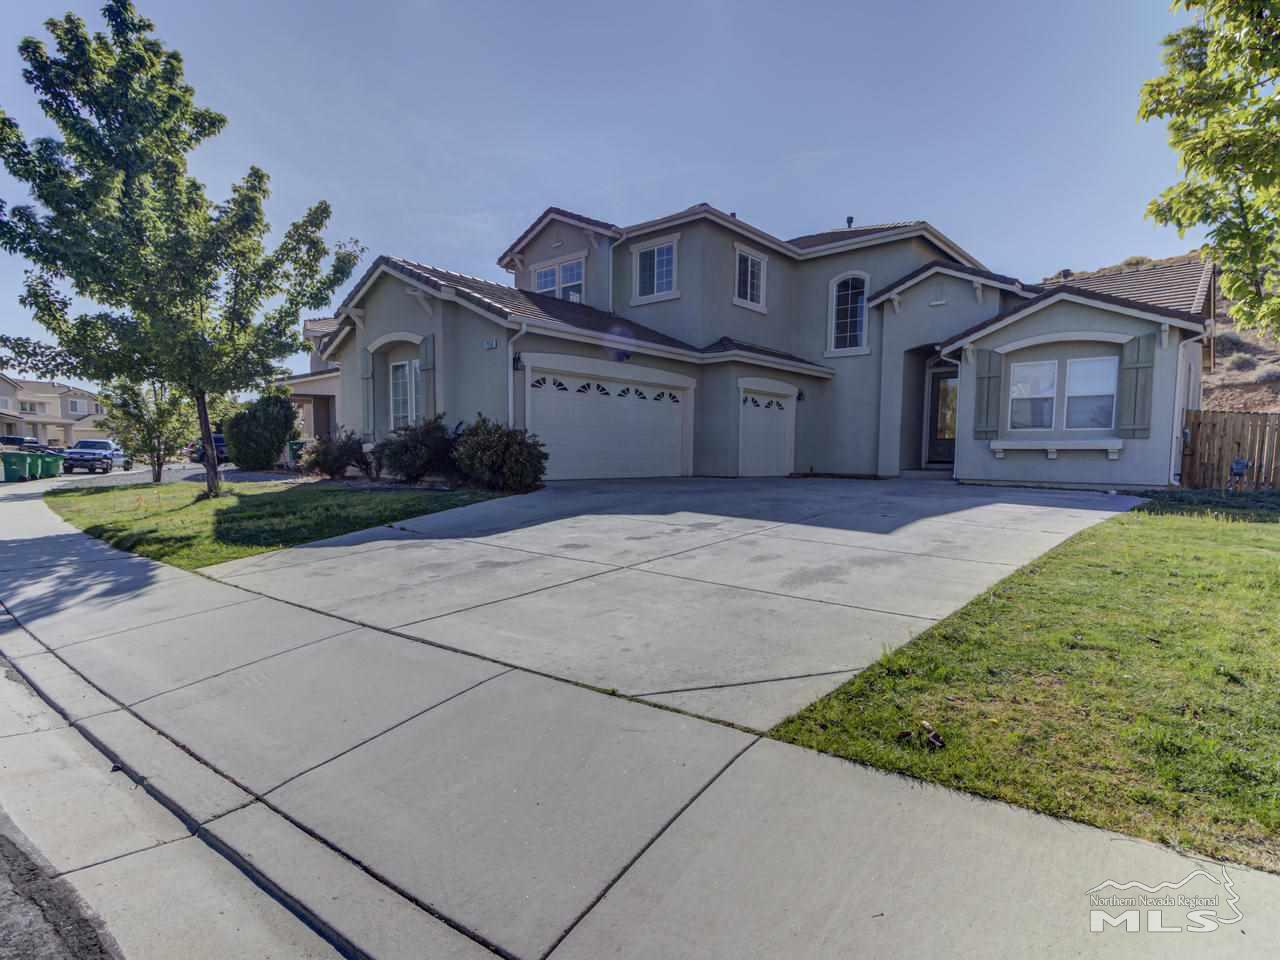 Image for 7153 Crest Hill, Reno, NV 89506